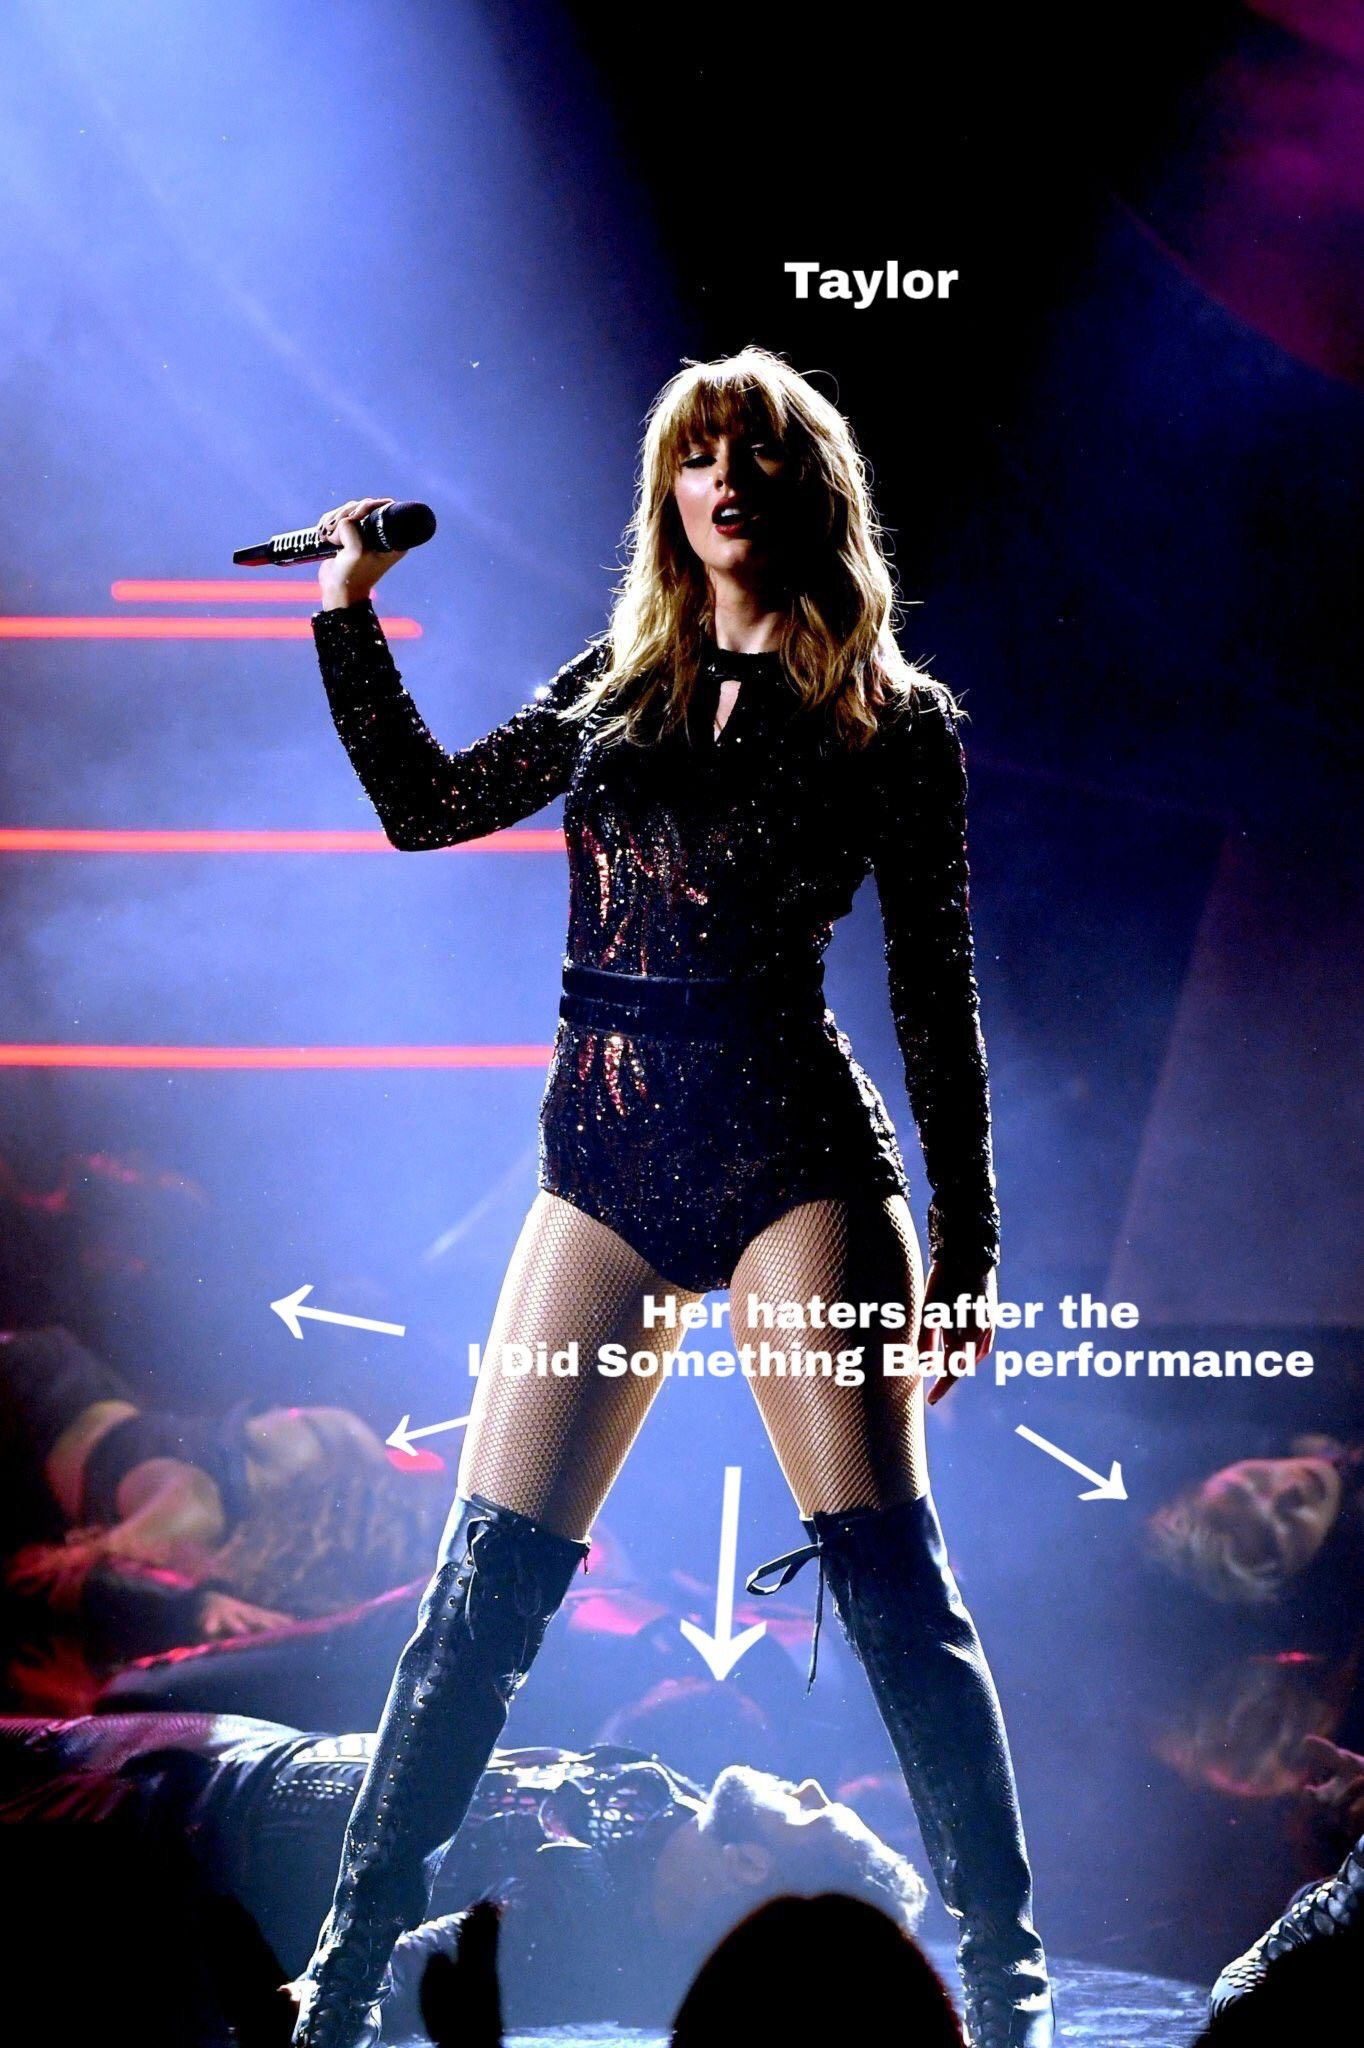 I Did Something Bad Amas Performance Taylor Swift New Long Live Taylor Swift Taylor Swift Meme